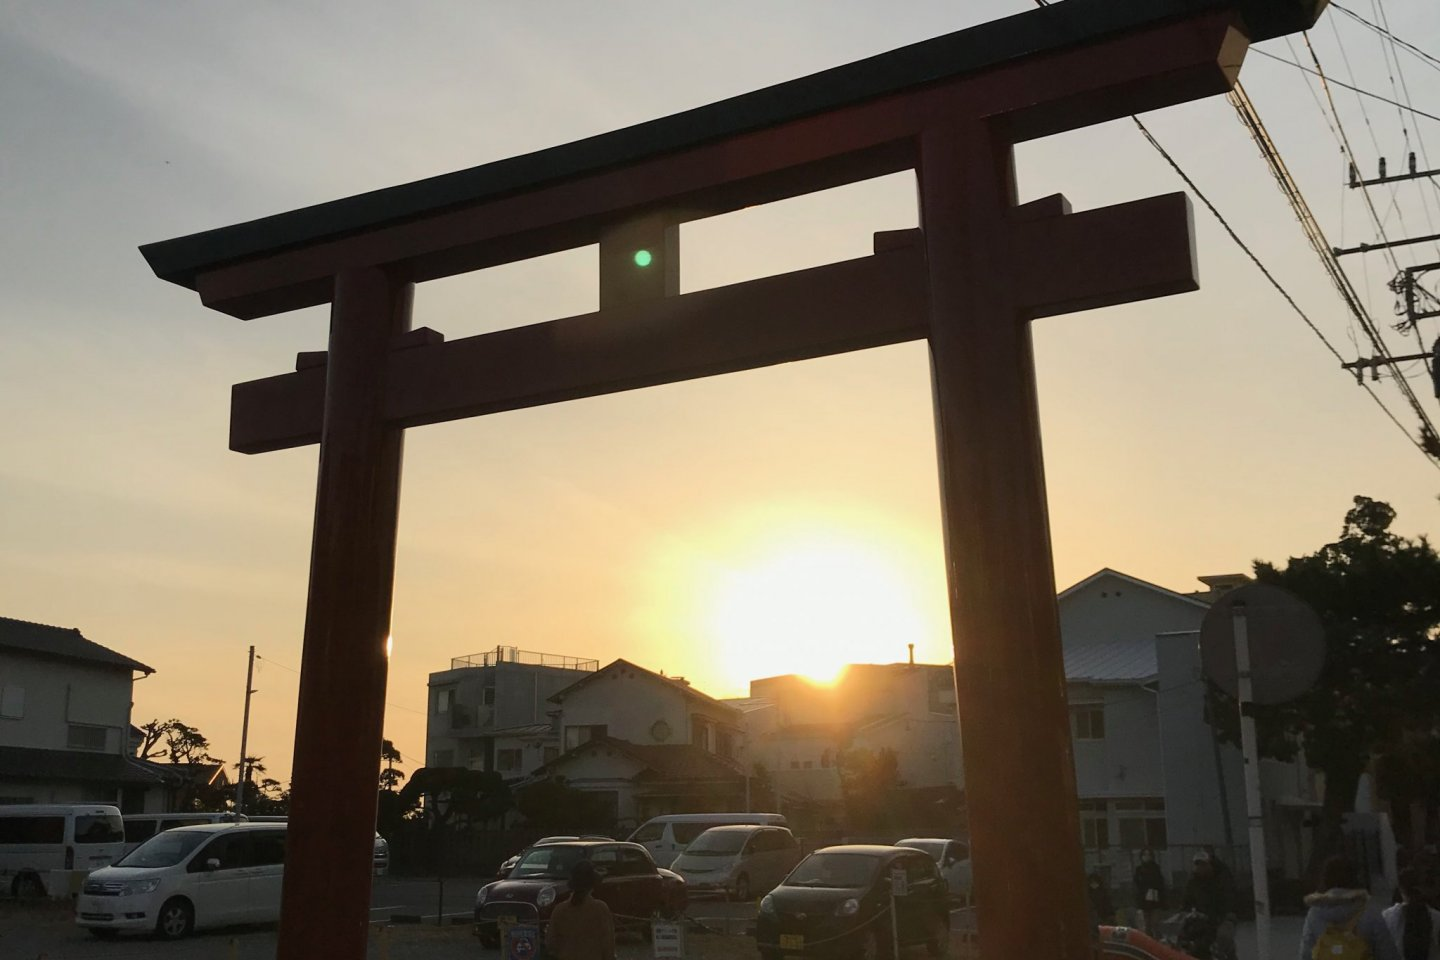 Torii near the road, leading to the shrine